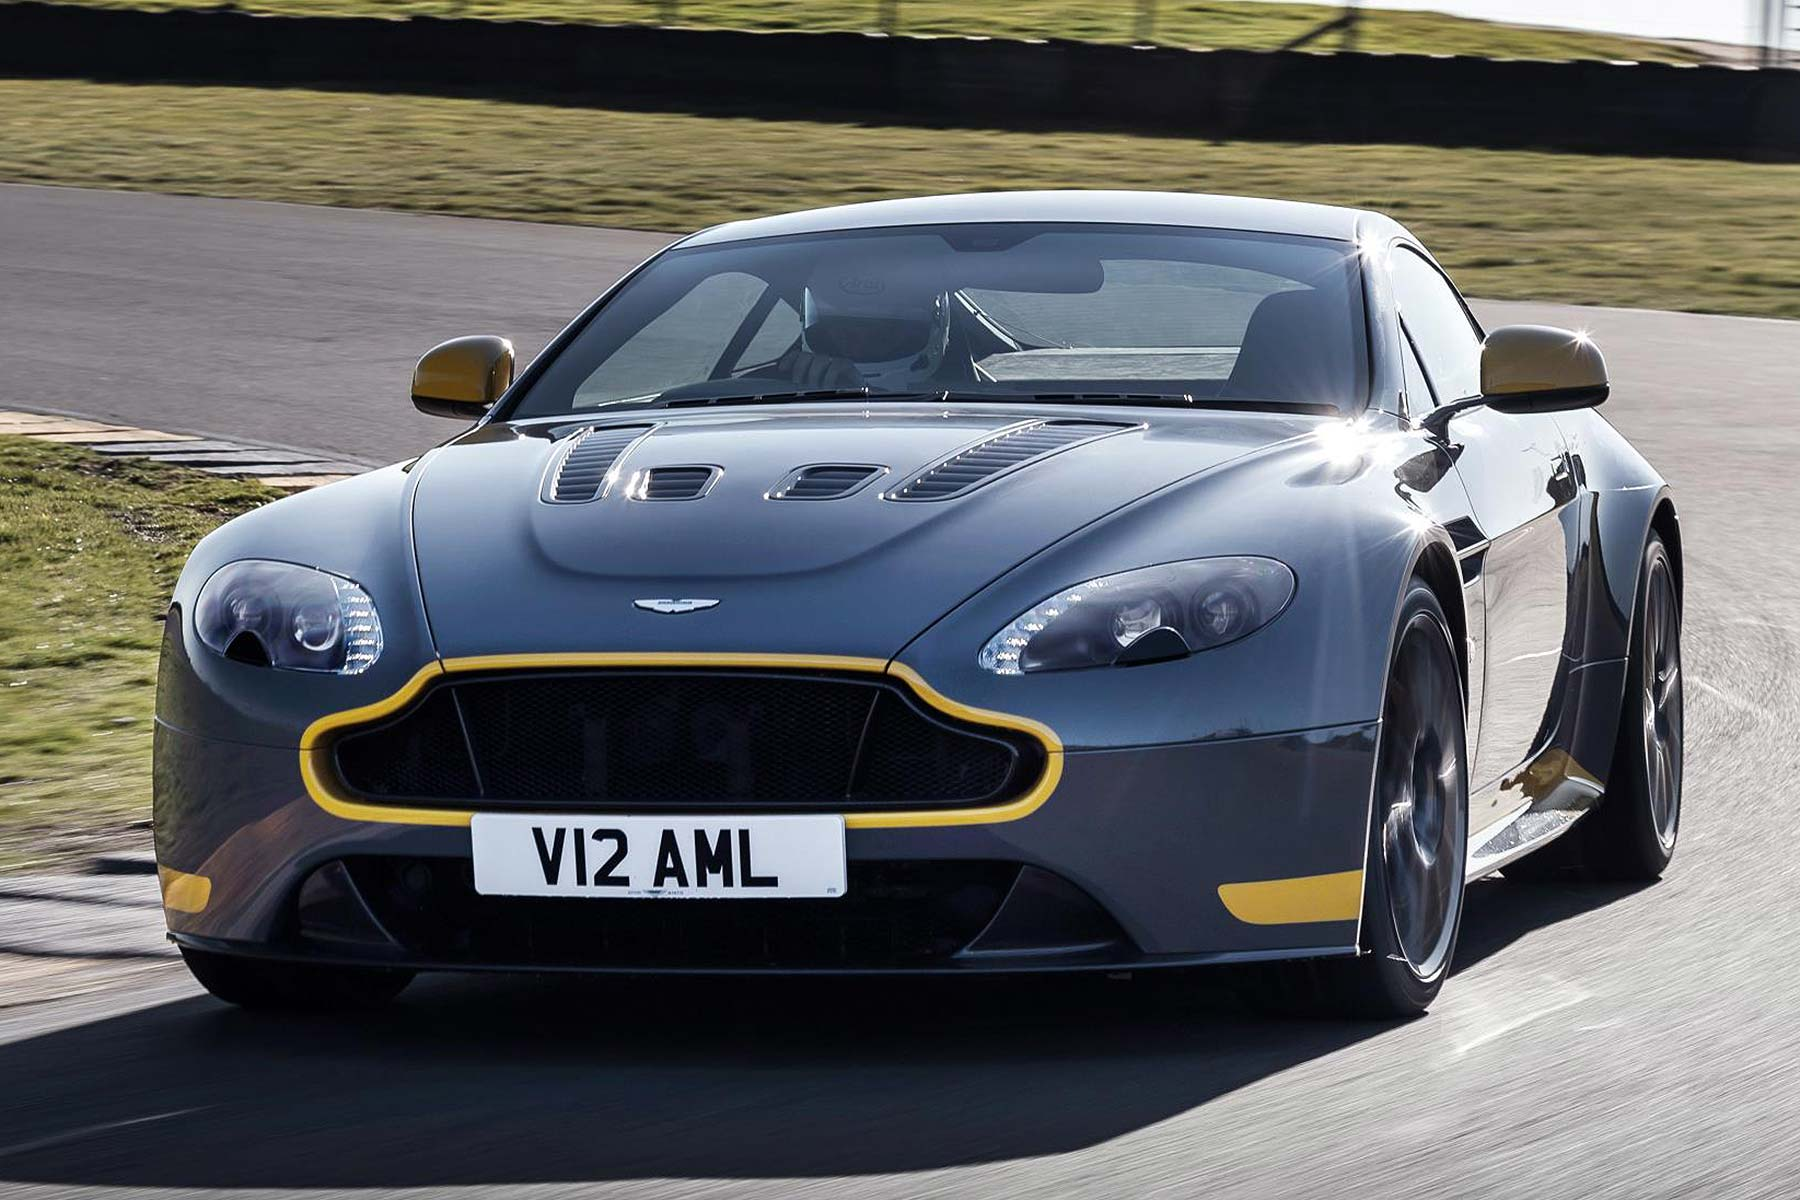 Aston Martin V12 Vantage S Manual Gearbox Version Revealed